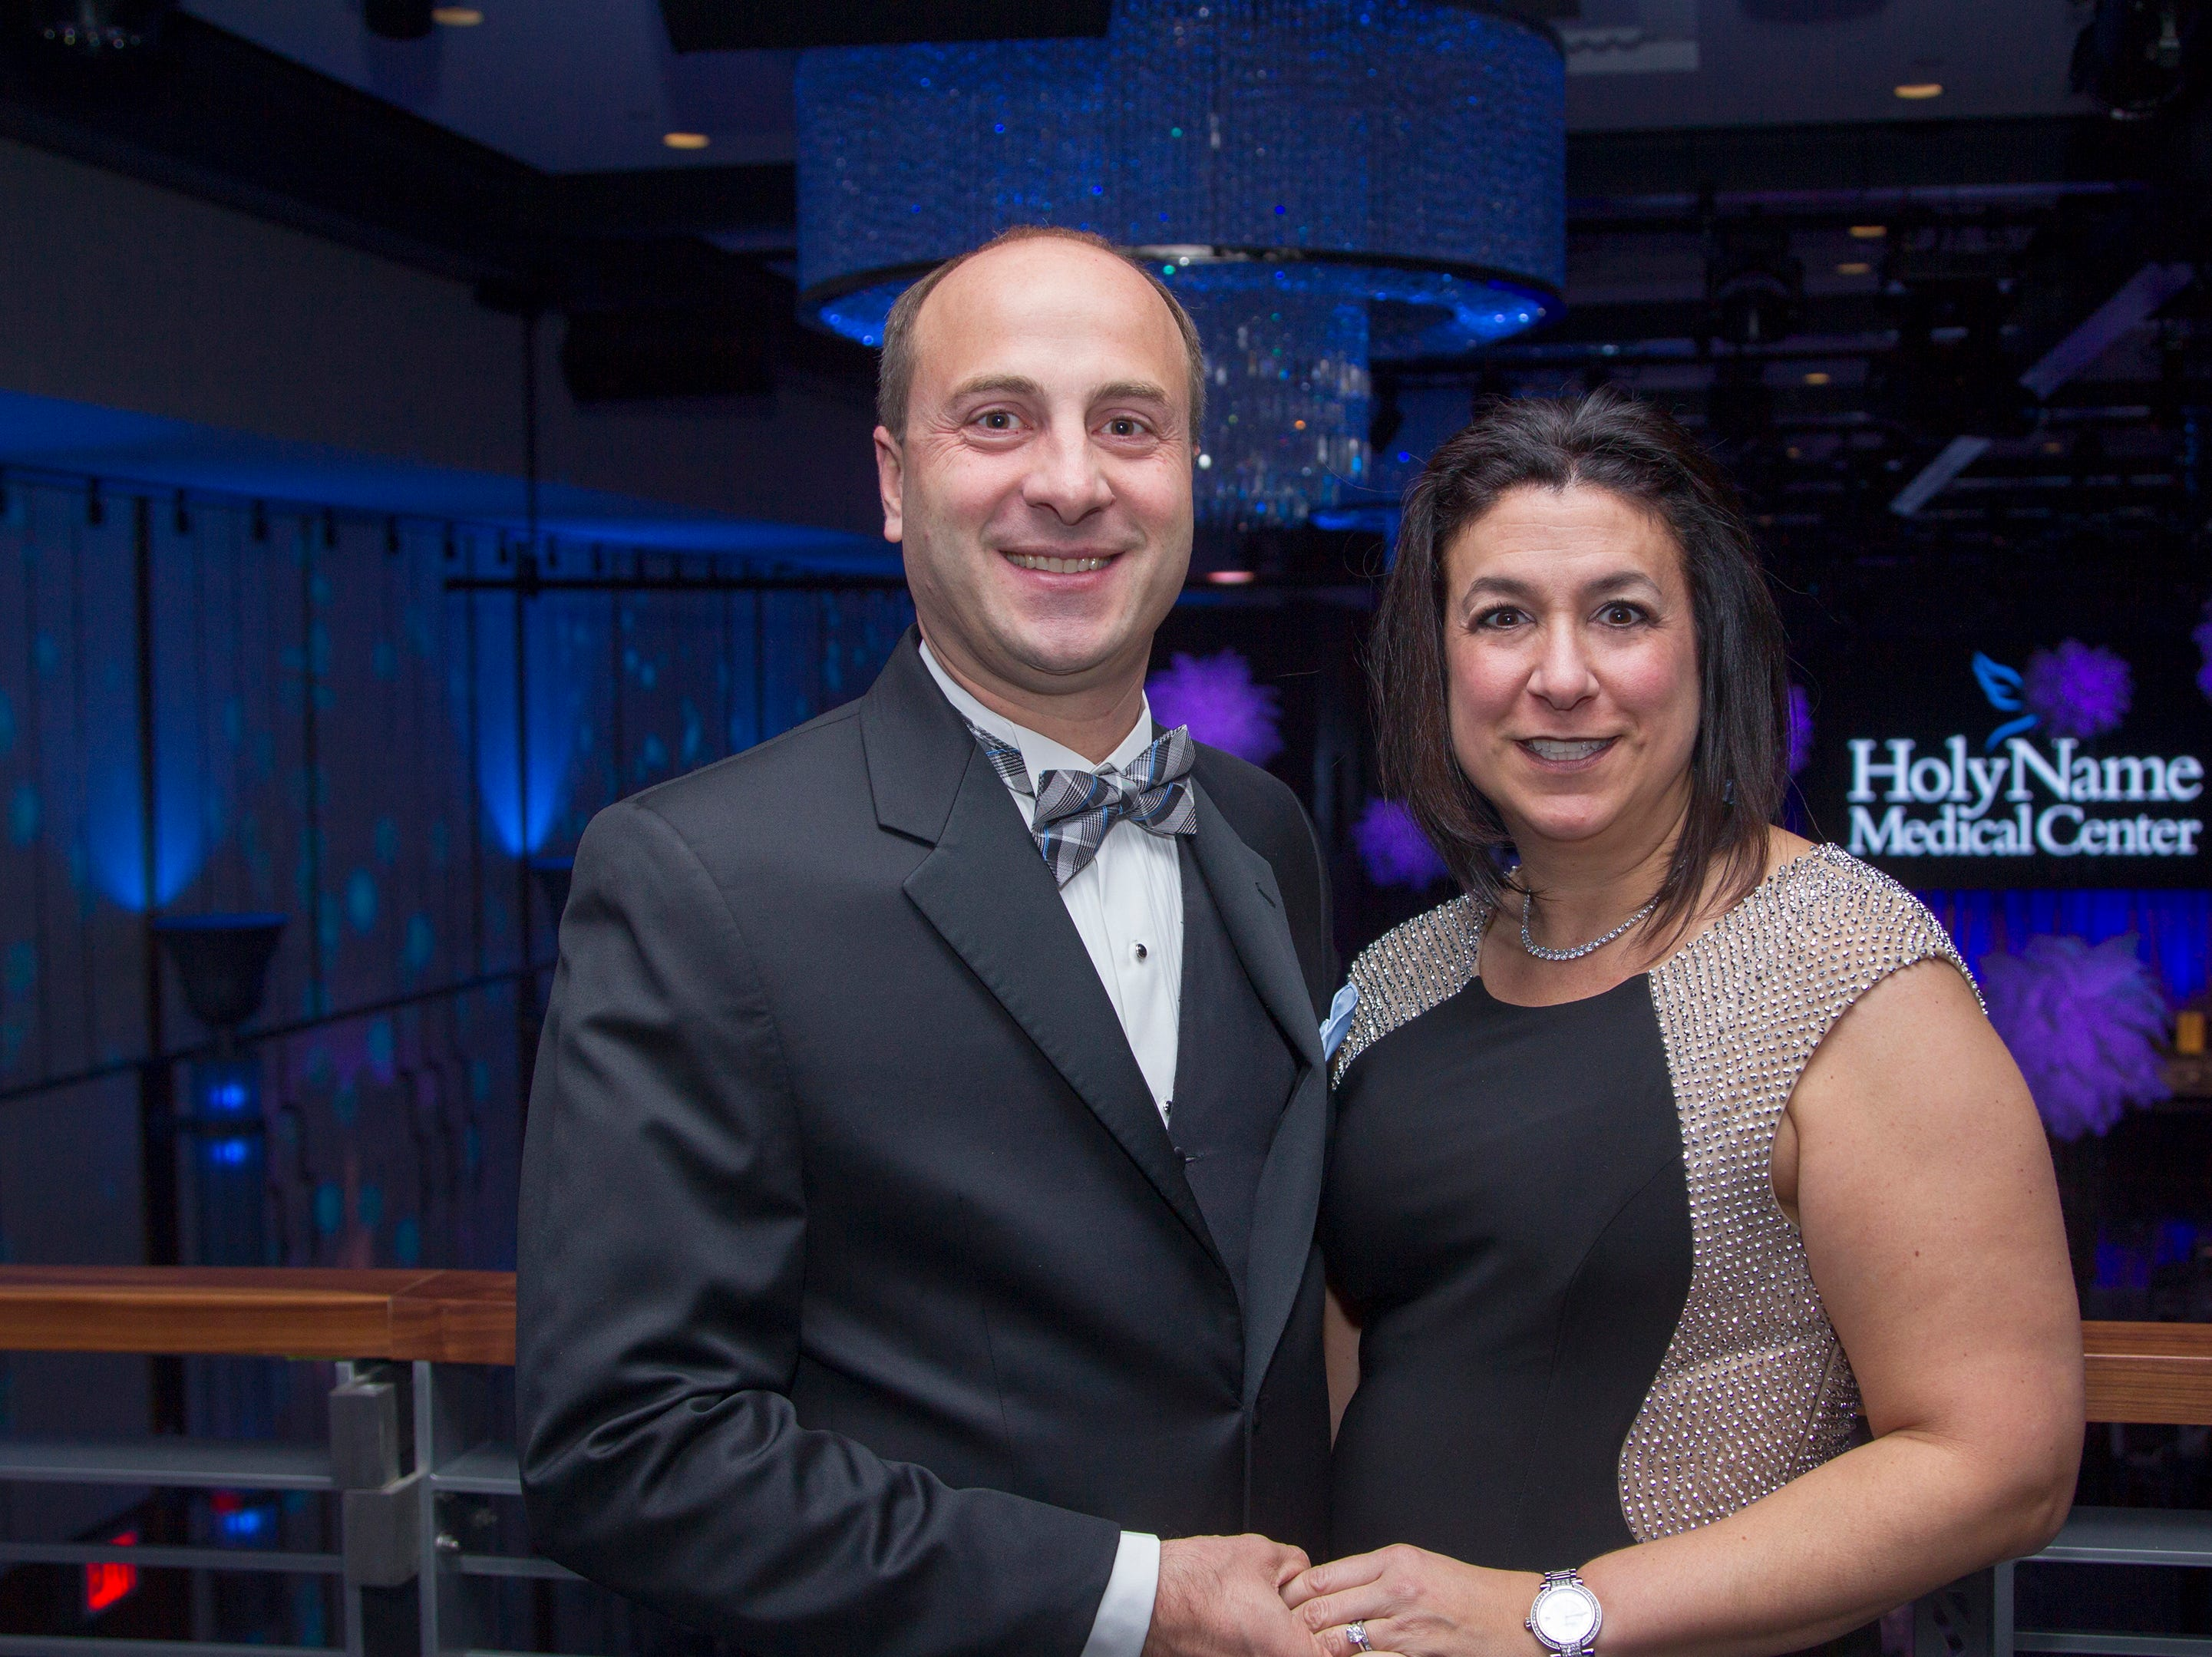 Giacomo and Gina Cocchiara. Holy Name Medical Center held its 2018 Founders Ball in NYC at Ziegfeld Ballroom. 11/17/2018